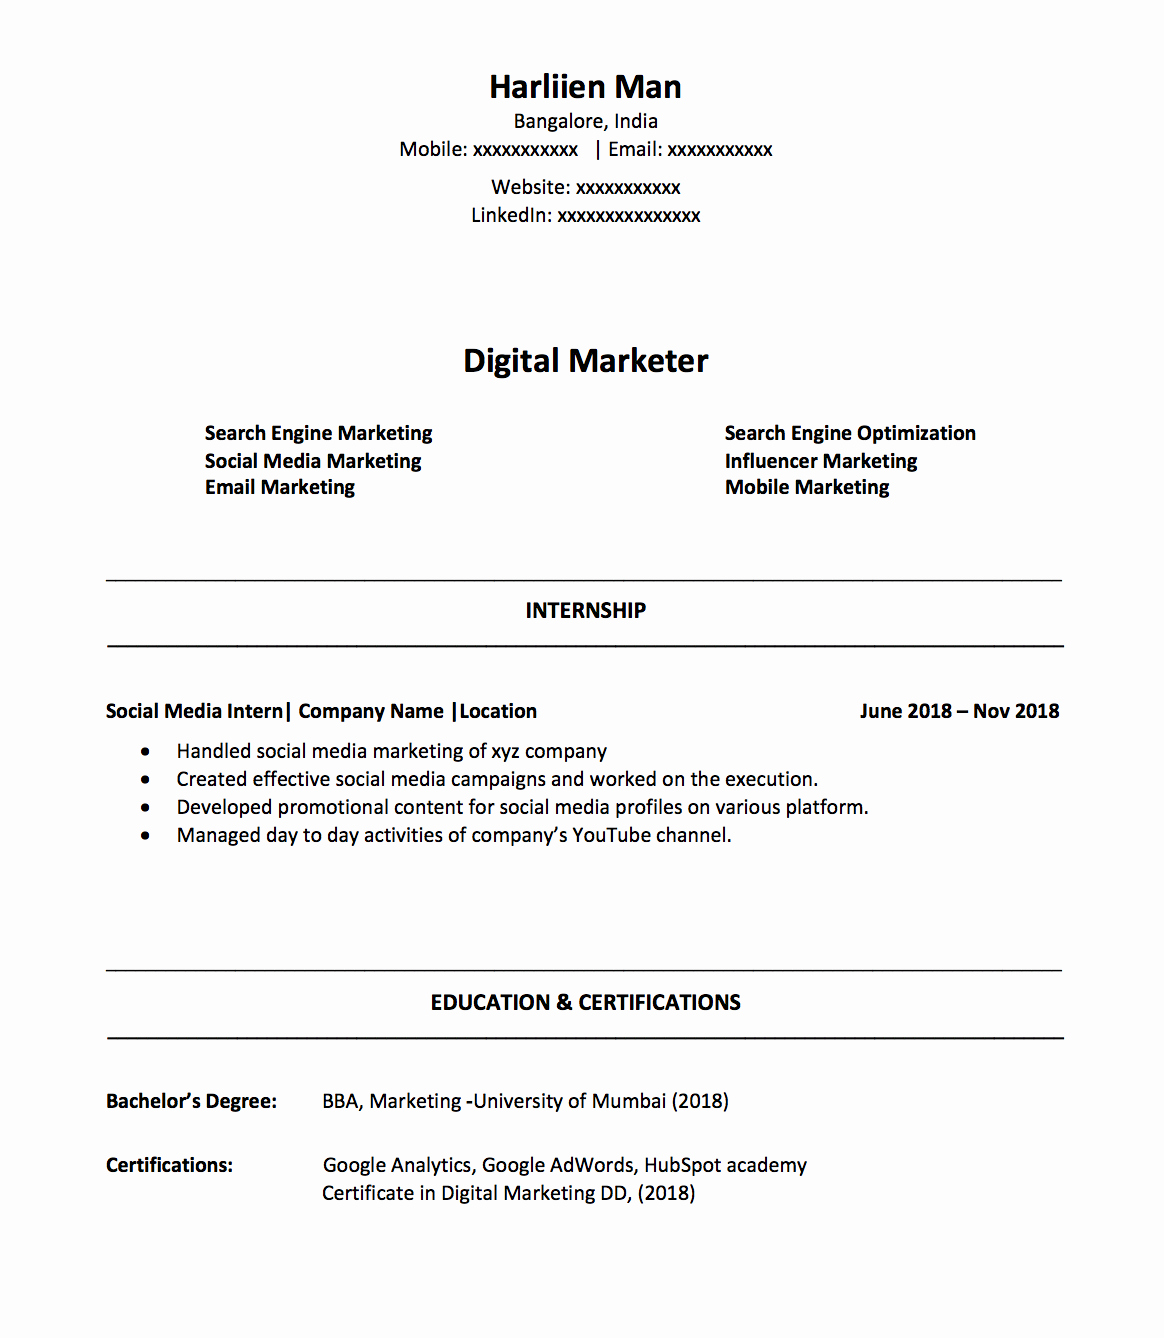 Digital Marketing Resume Sample Luxury How to Make A Digital Marketing Resume as A Fresher In 2019